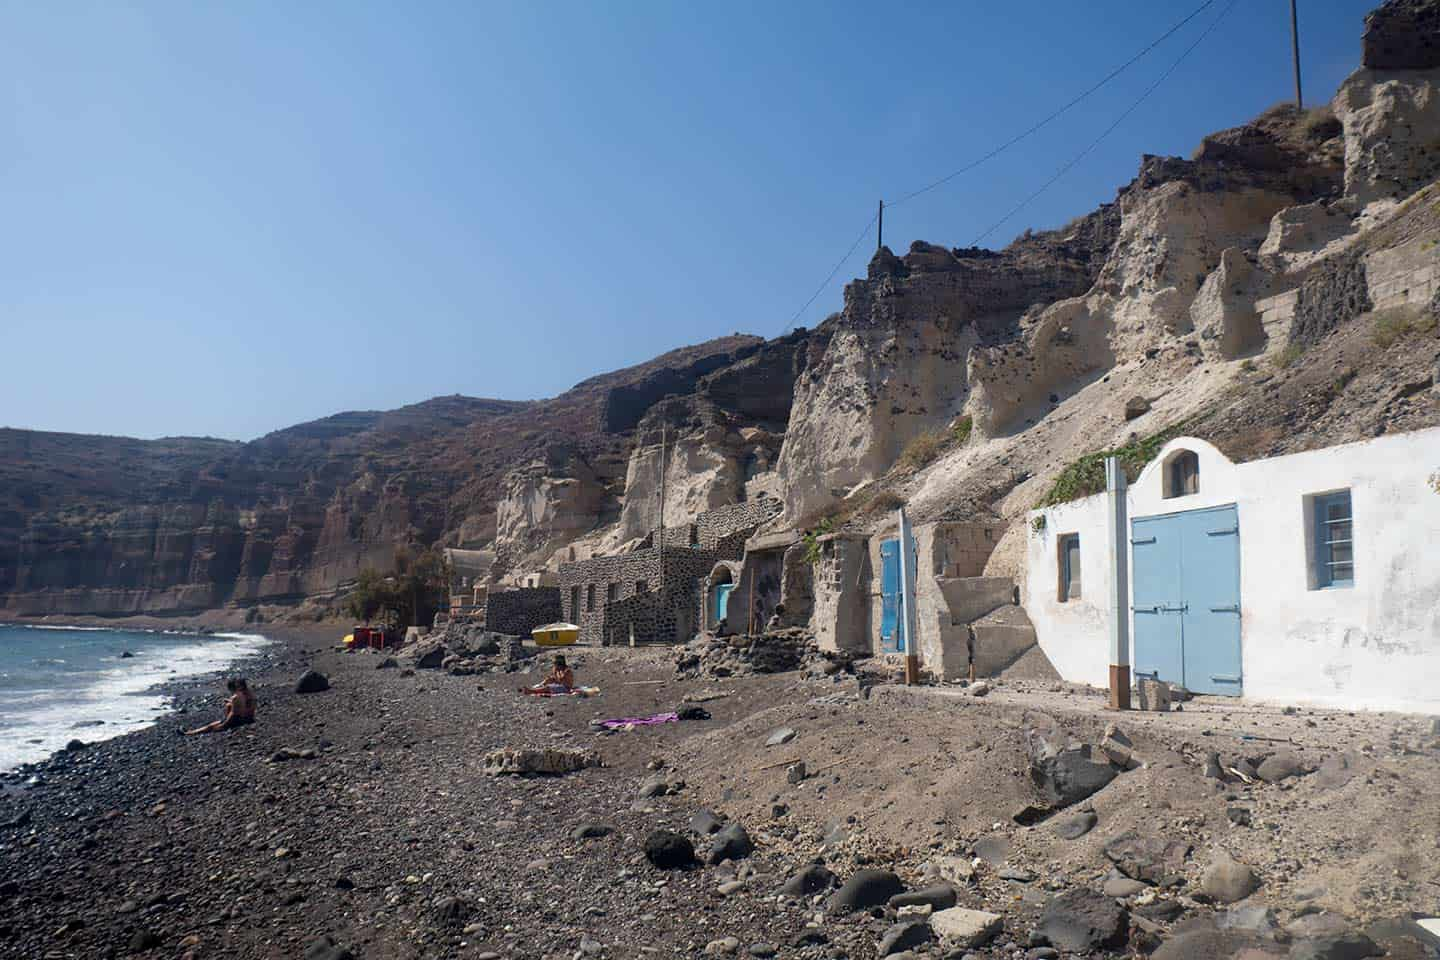 Image of Black Beach in Santorini with houses built into cliffs